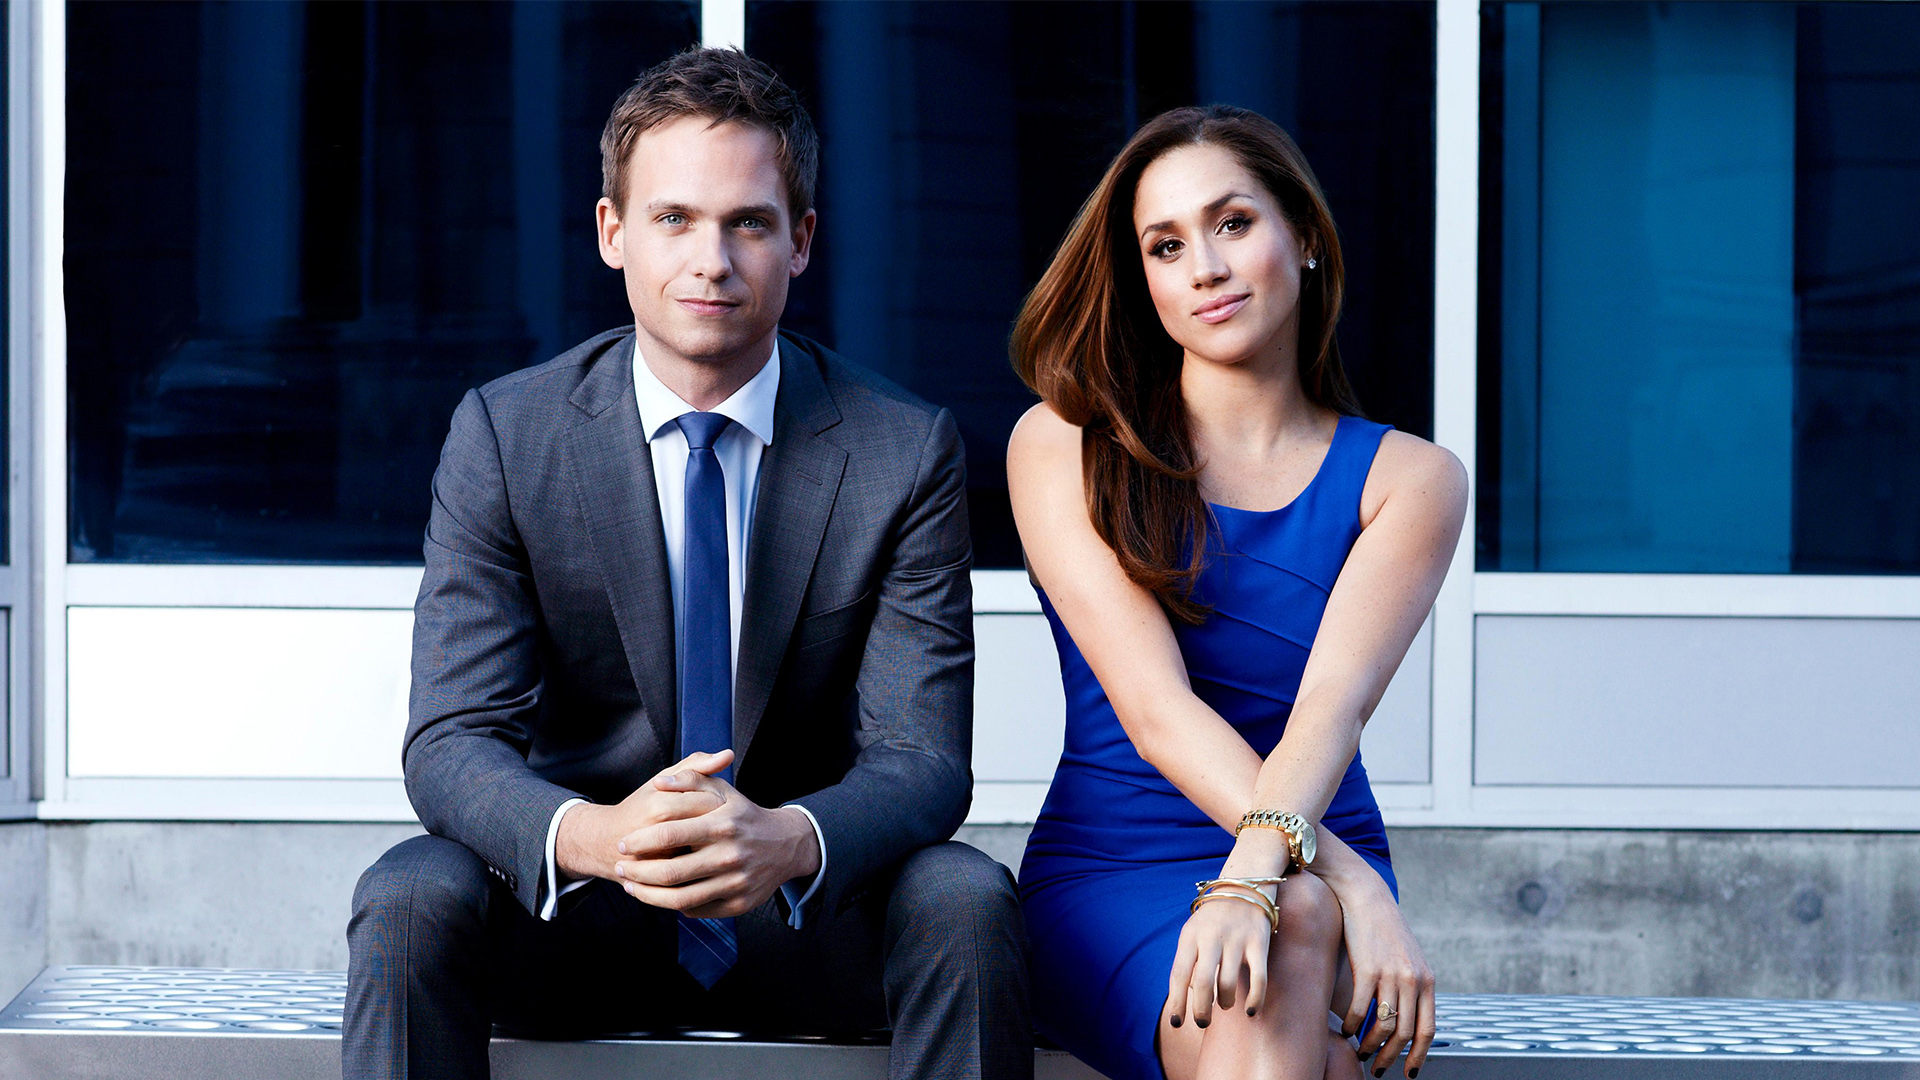 Suits TV series Wallpapers   Wallpaper High Definition High Quality 1920x1080